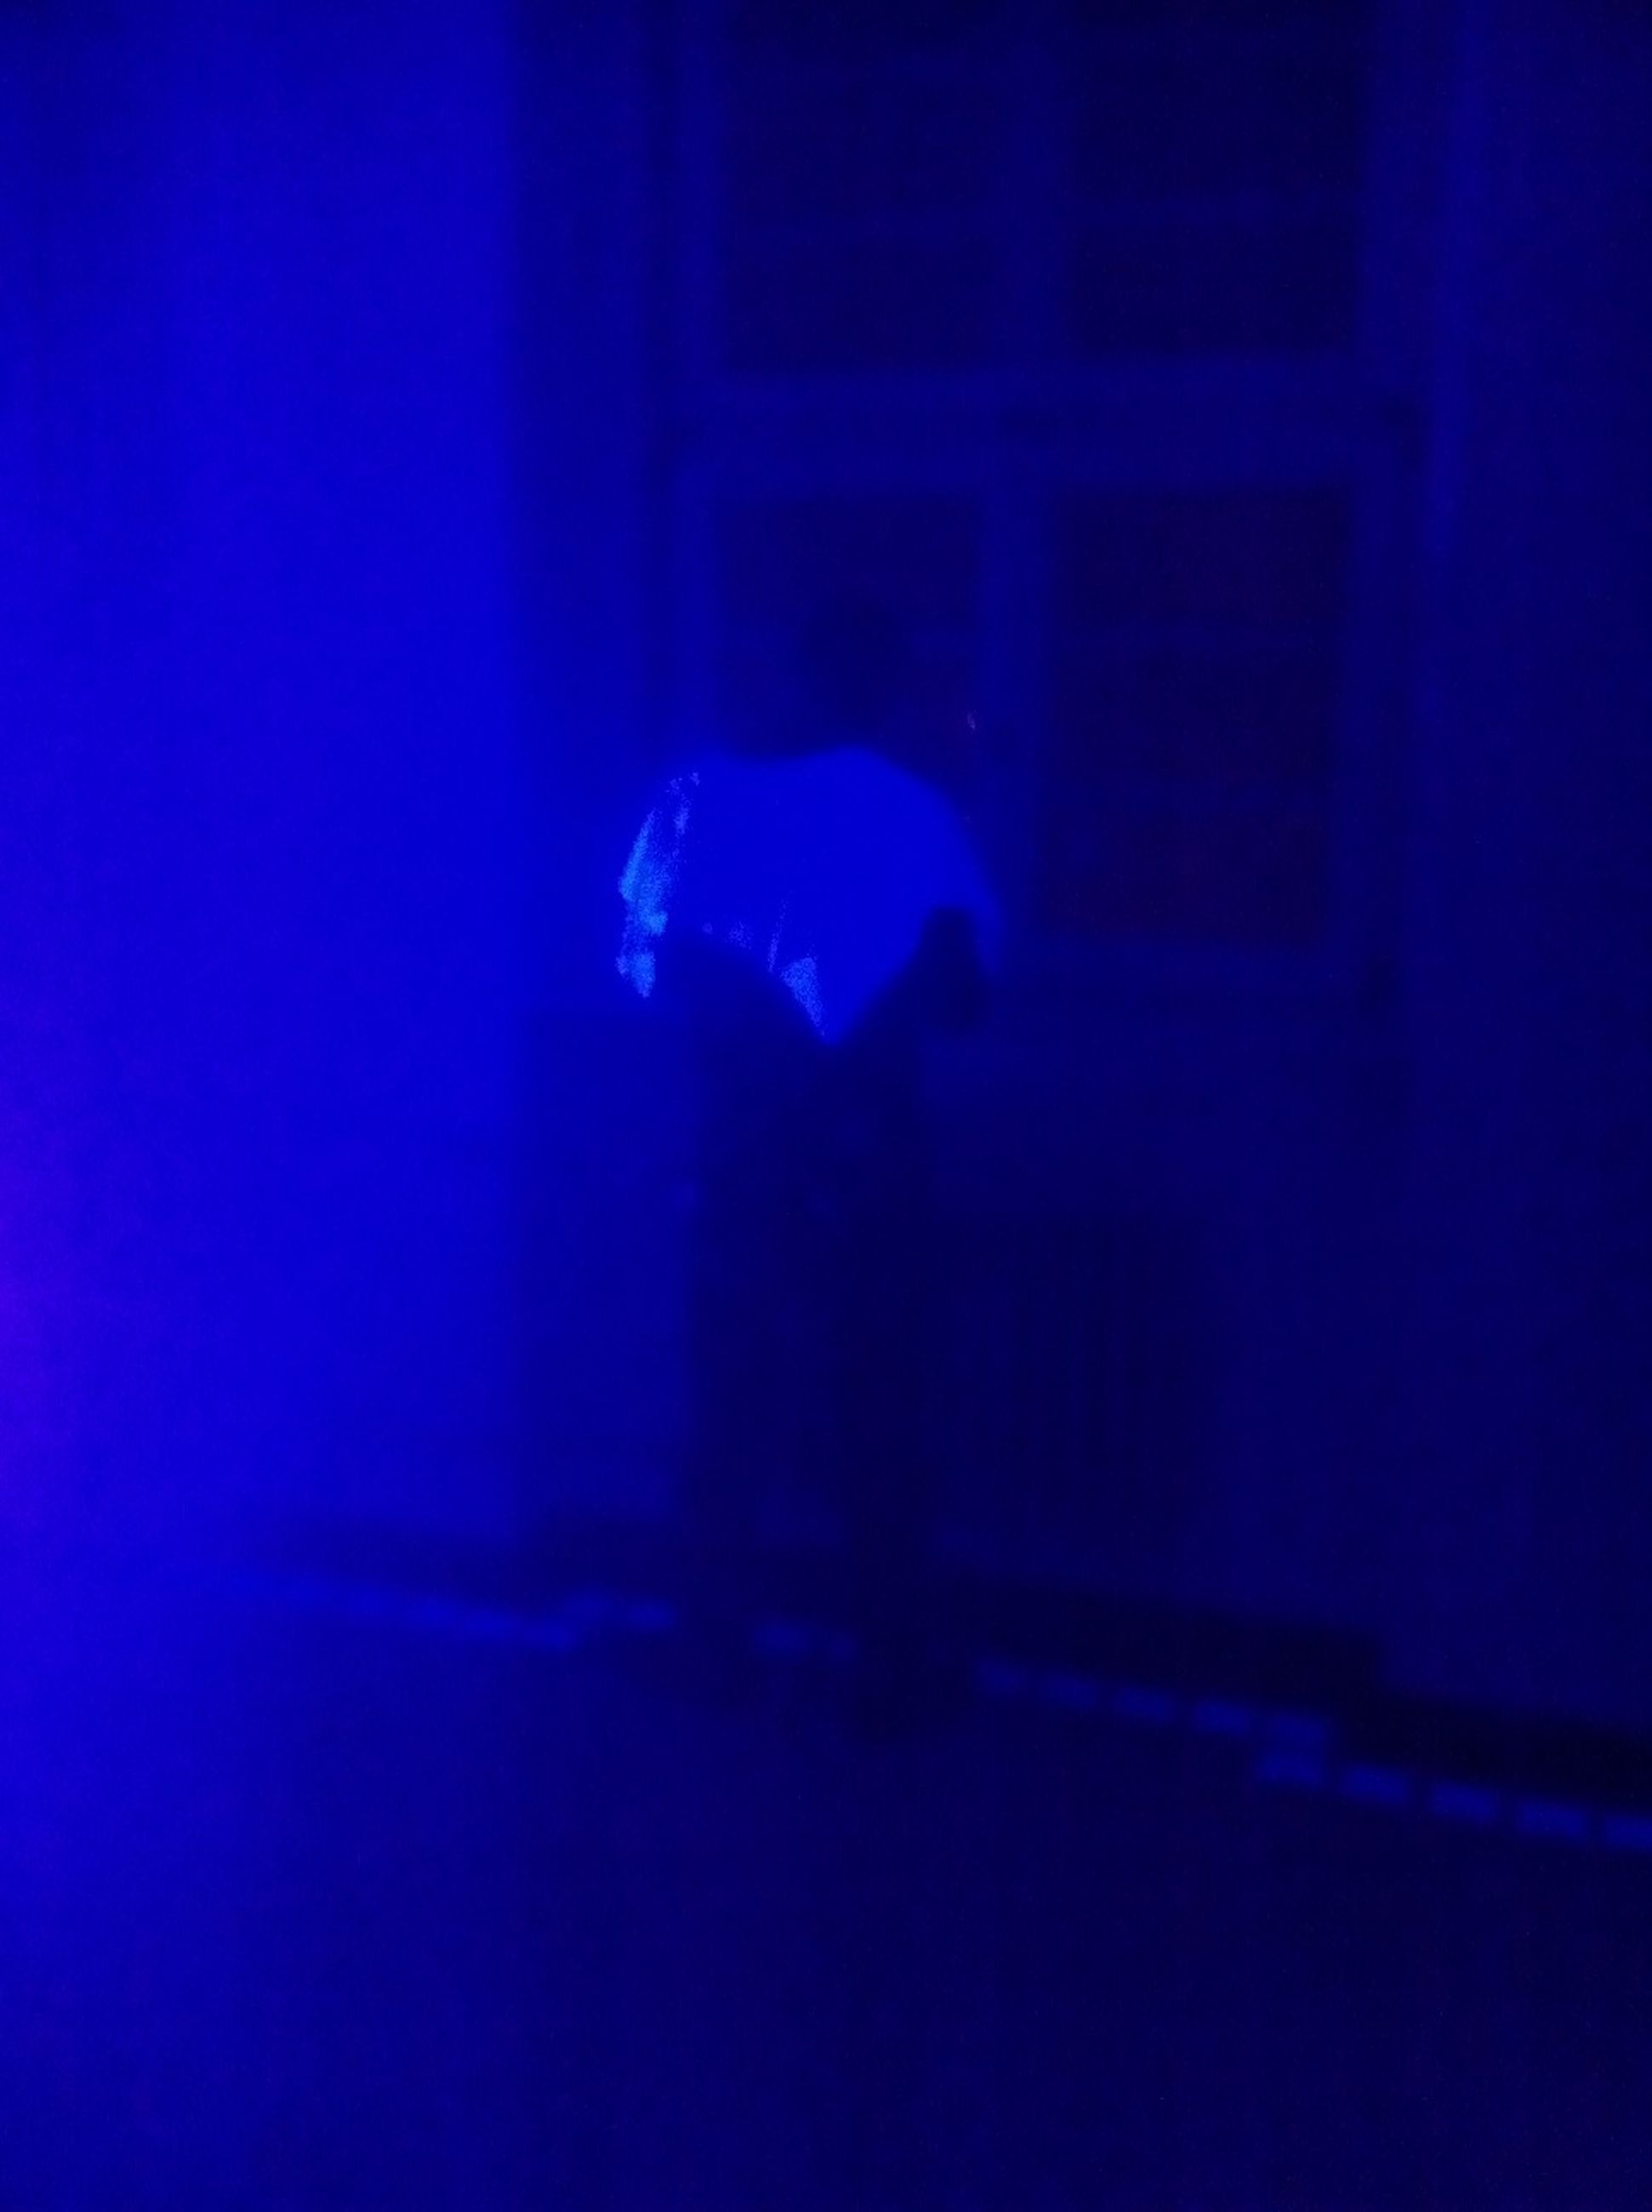 blue, lifestyles, indoors, leisure activity, men, illuminated, night, unrecognizable person, full length, rear view, silhouette, light - natural phenomenon, underwater, person, skill, standing, arts culture and entertainment, music